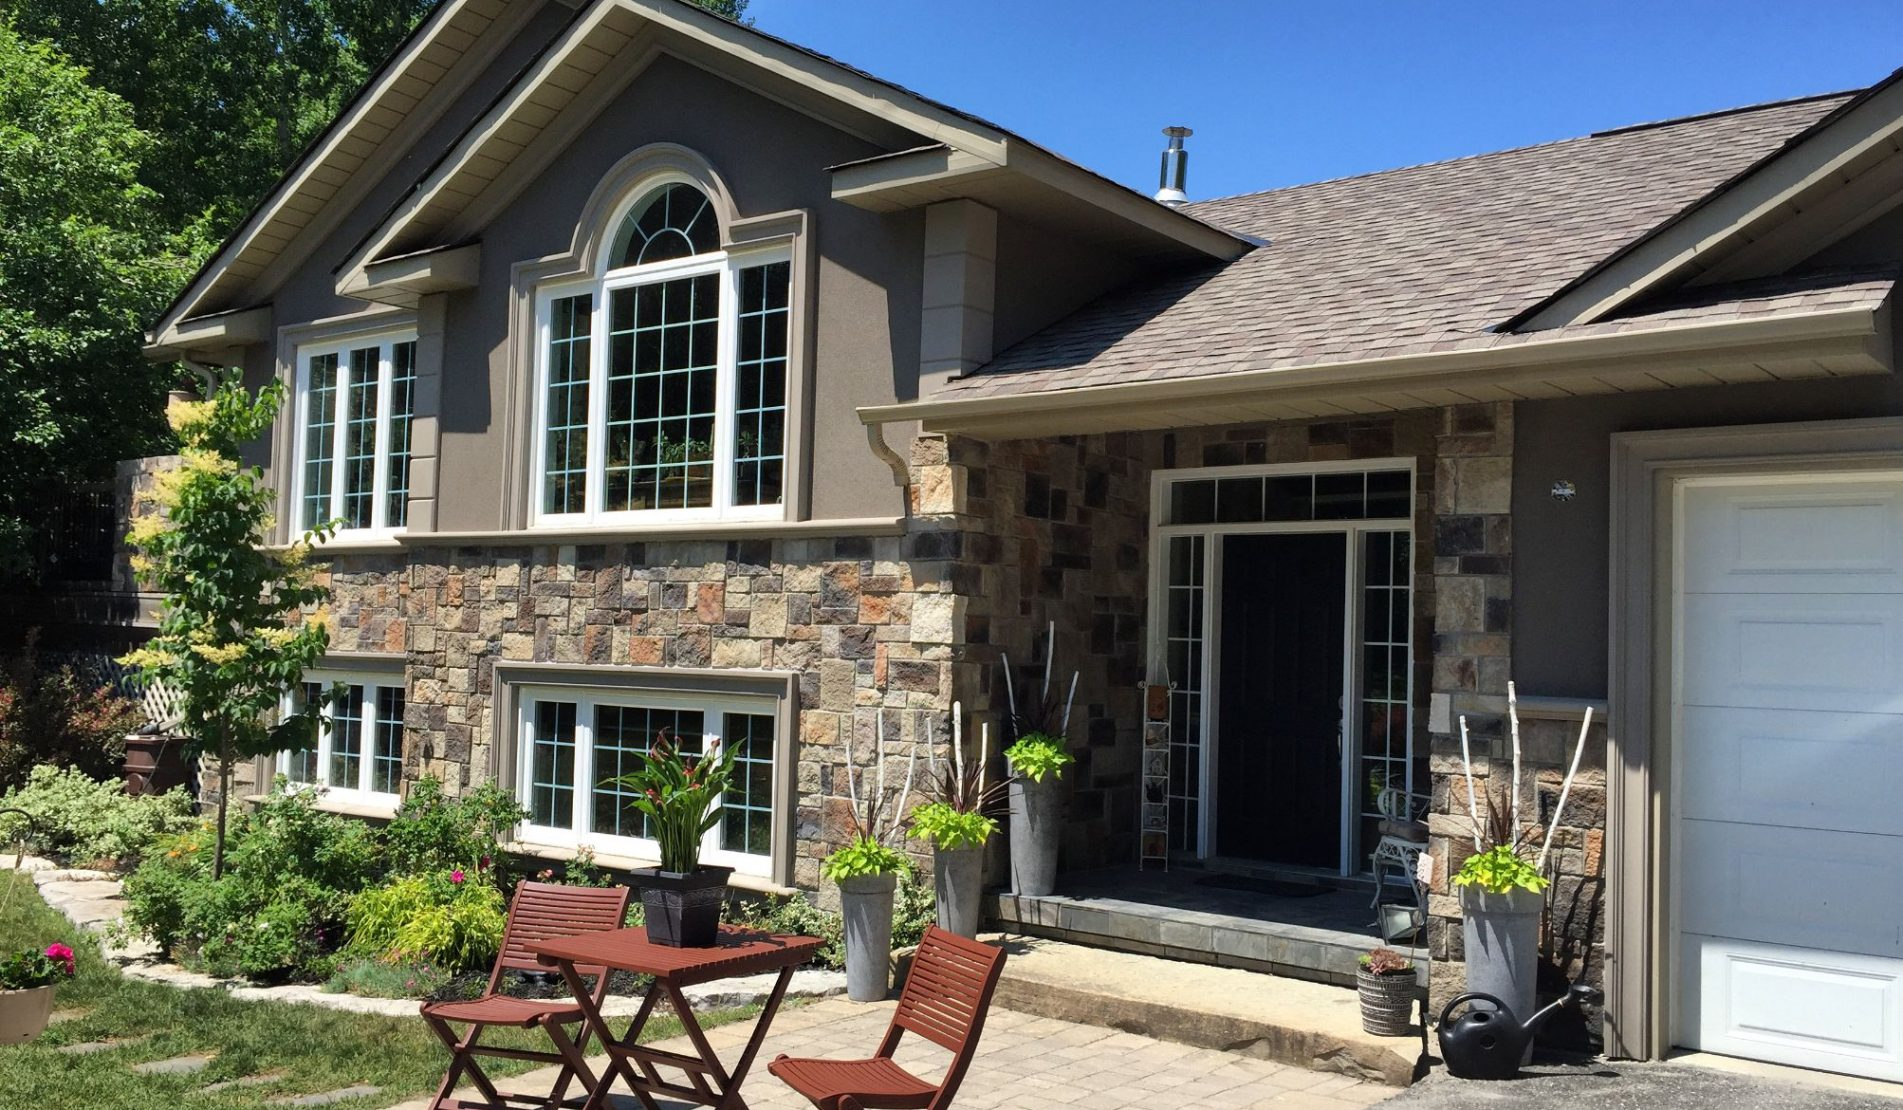 custom home with amazing stone siding and stucco